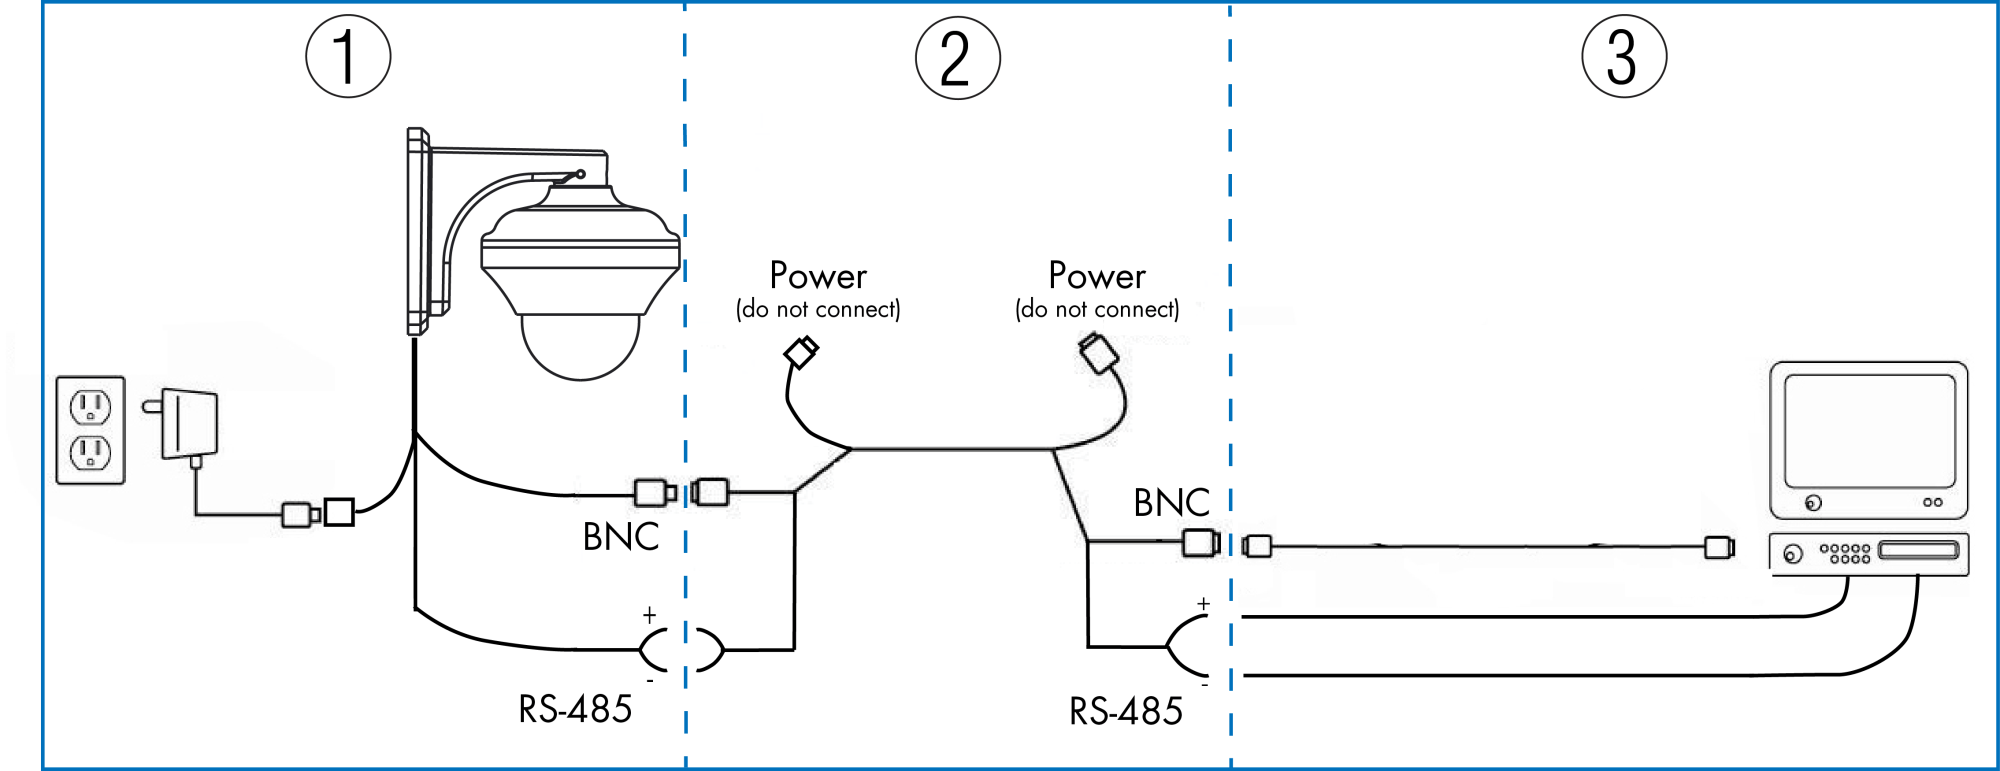 hight resolution of connect the camera to the bnc and rs485 connectors on the included 100ft extension cable